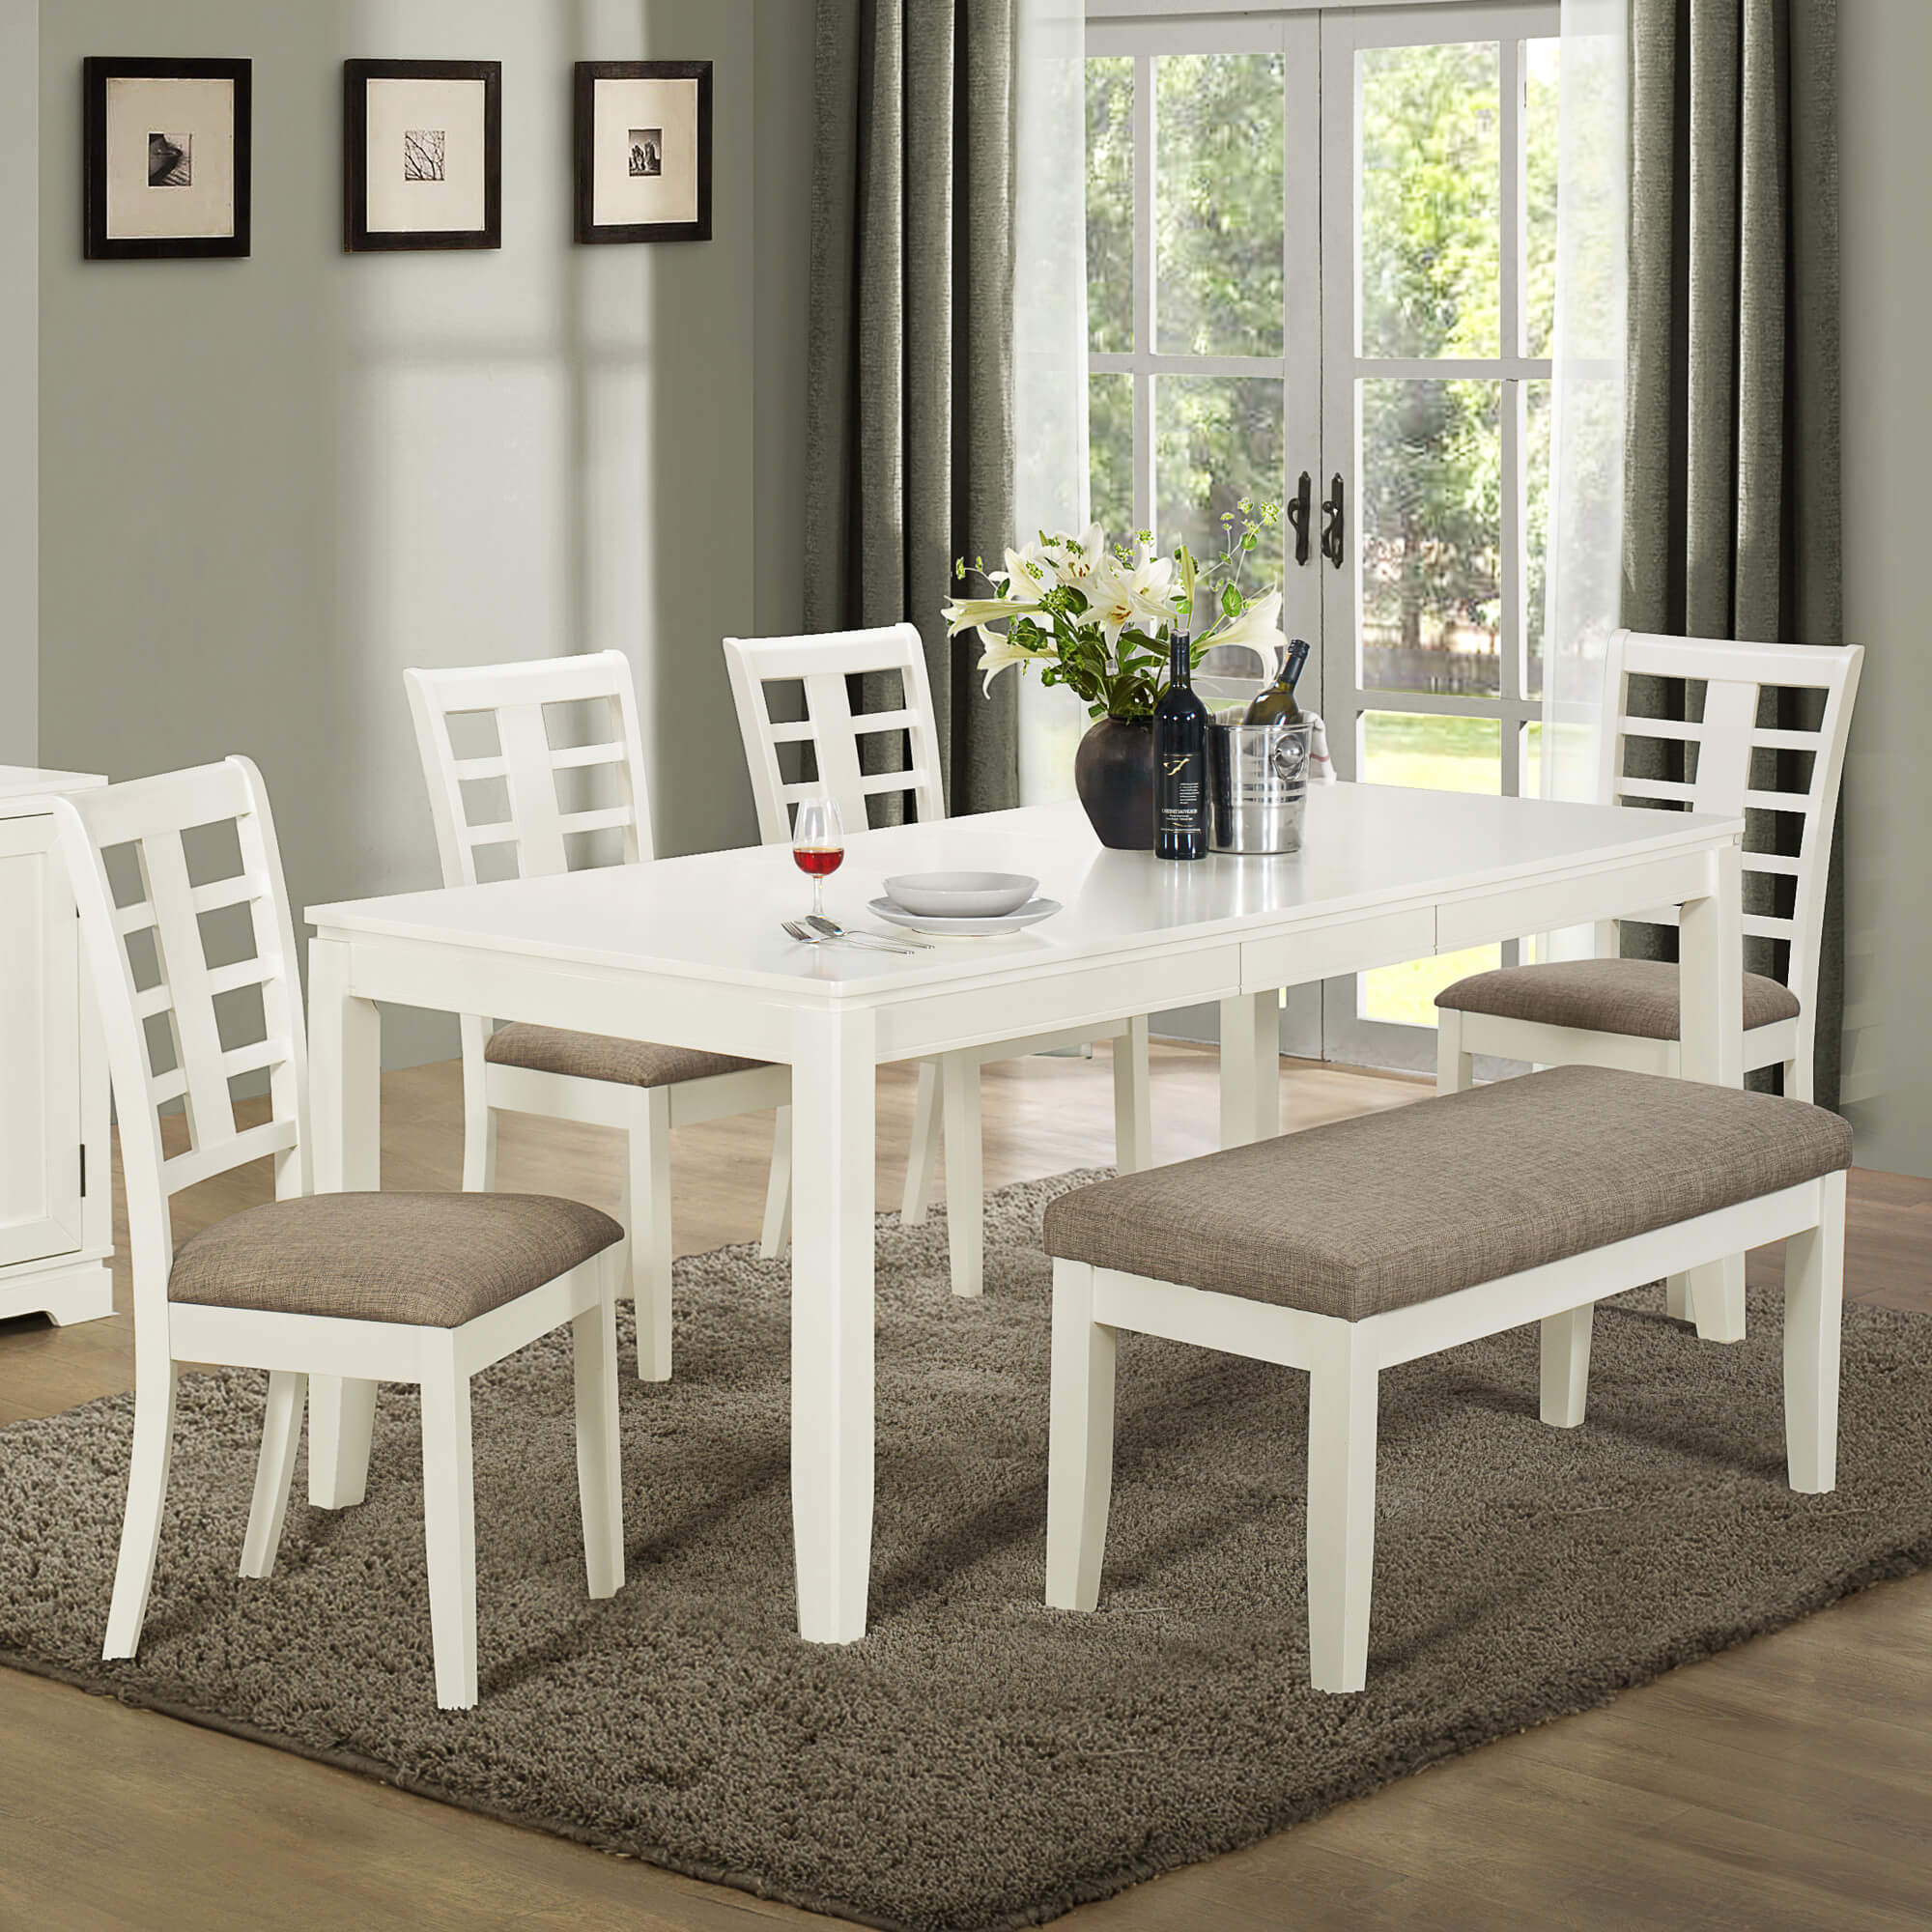 Built with solid wood and mdf board this white and grey dining set with bench